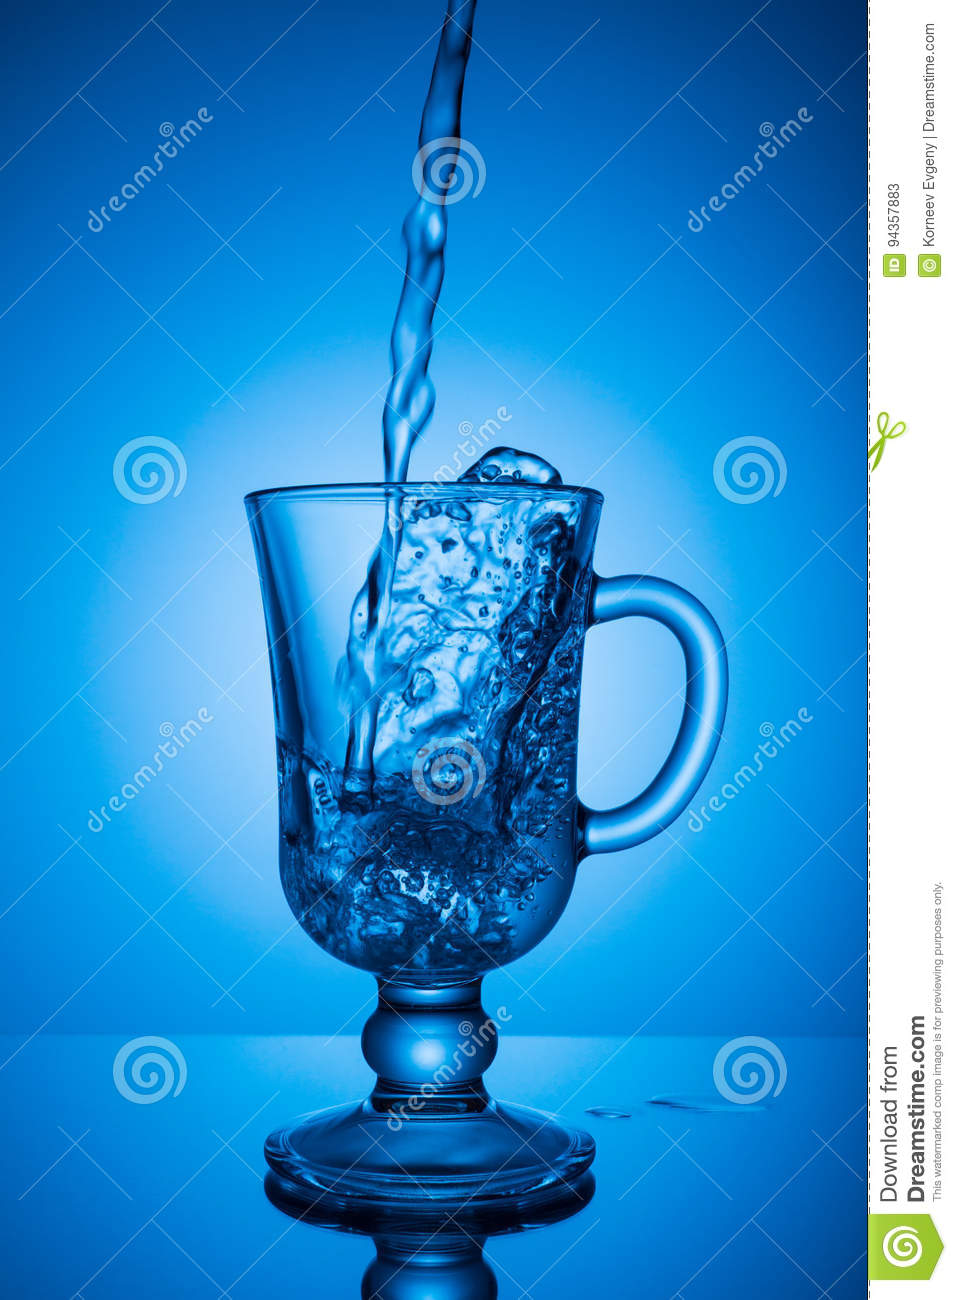 Sparkling water. Dynamic spike, thirst quenching on a hot day.